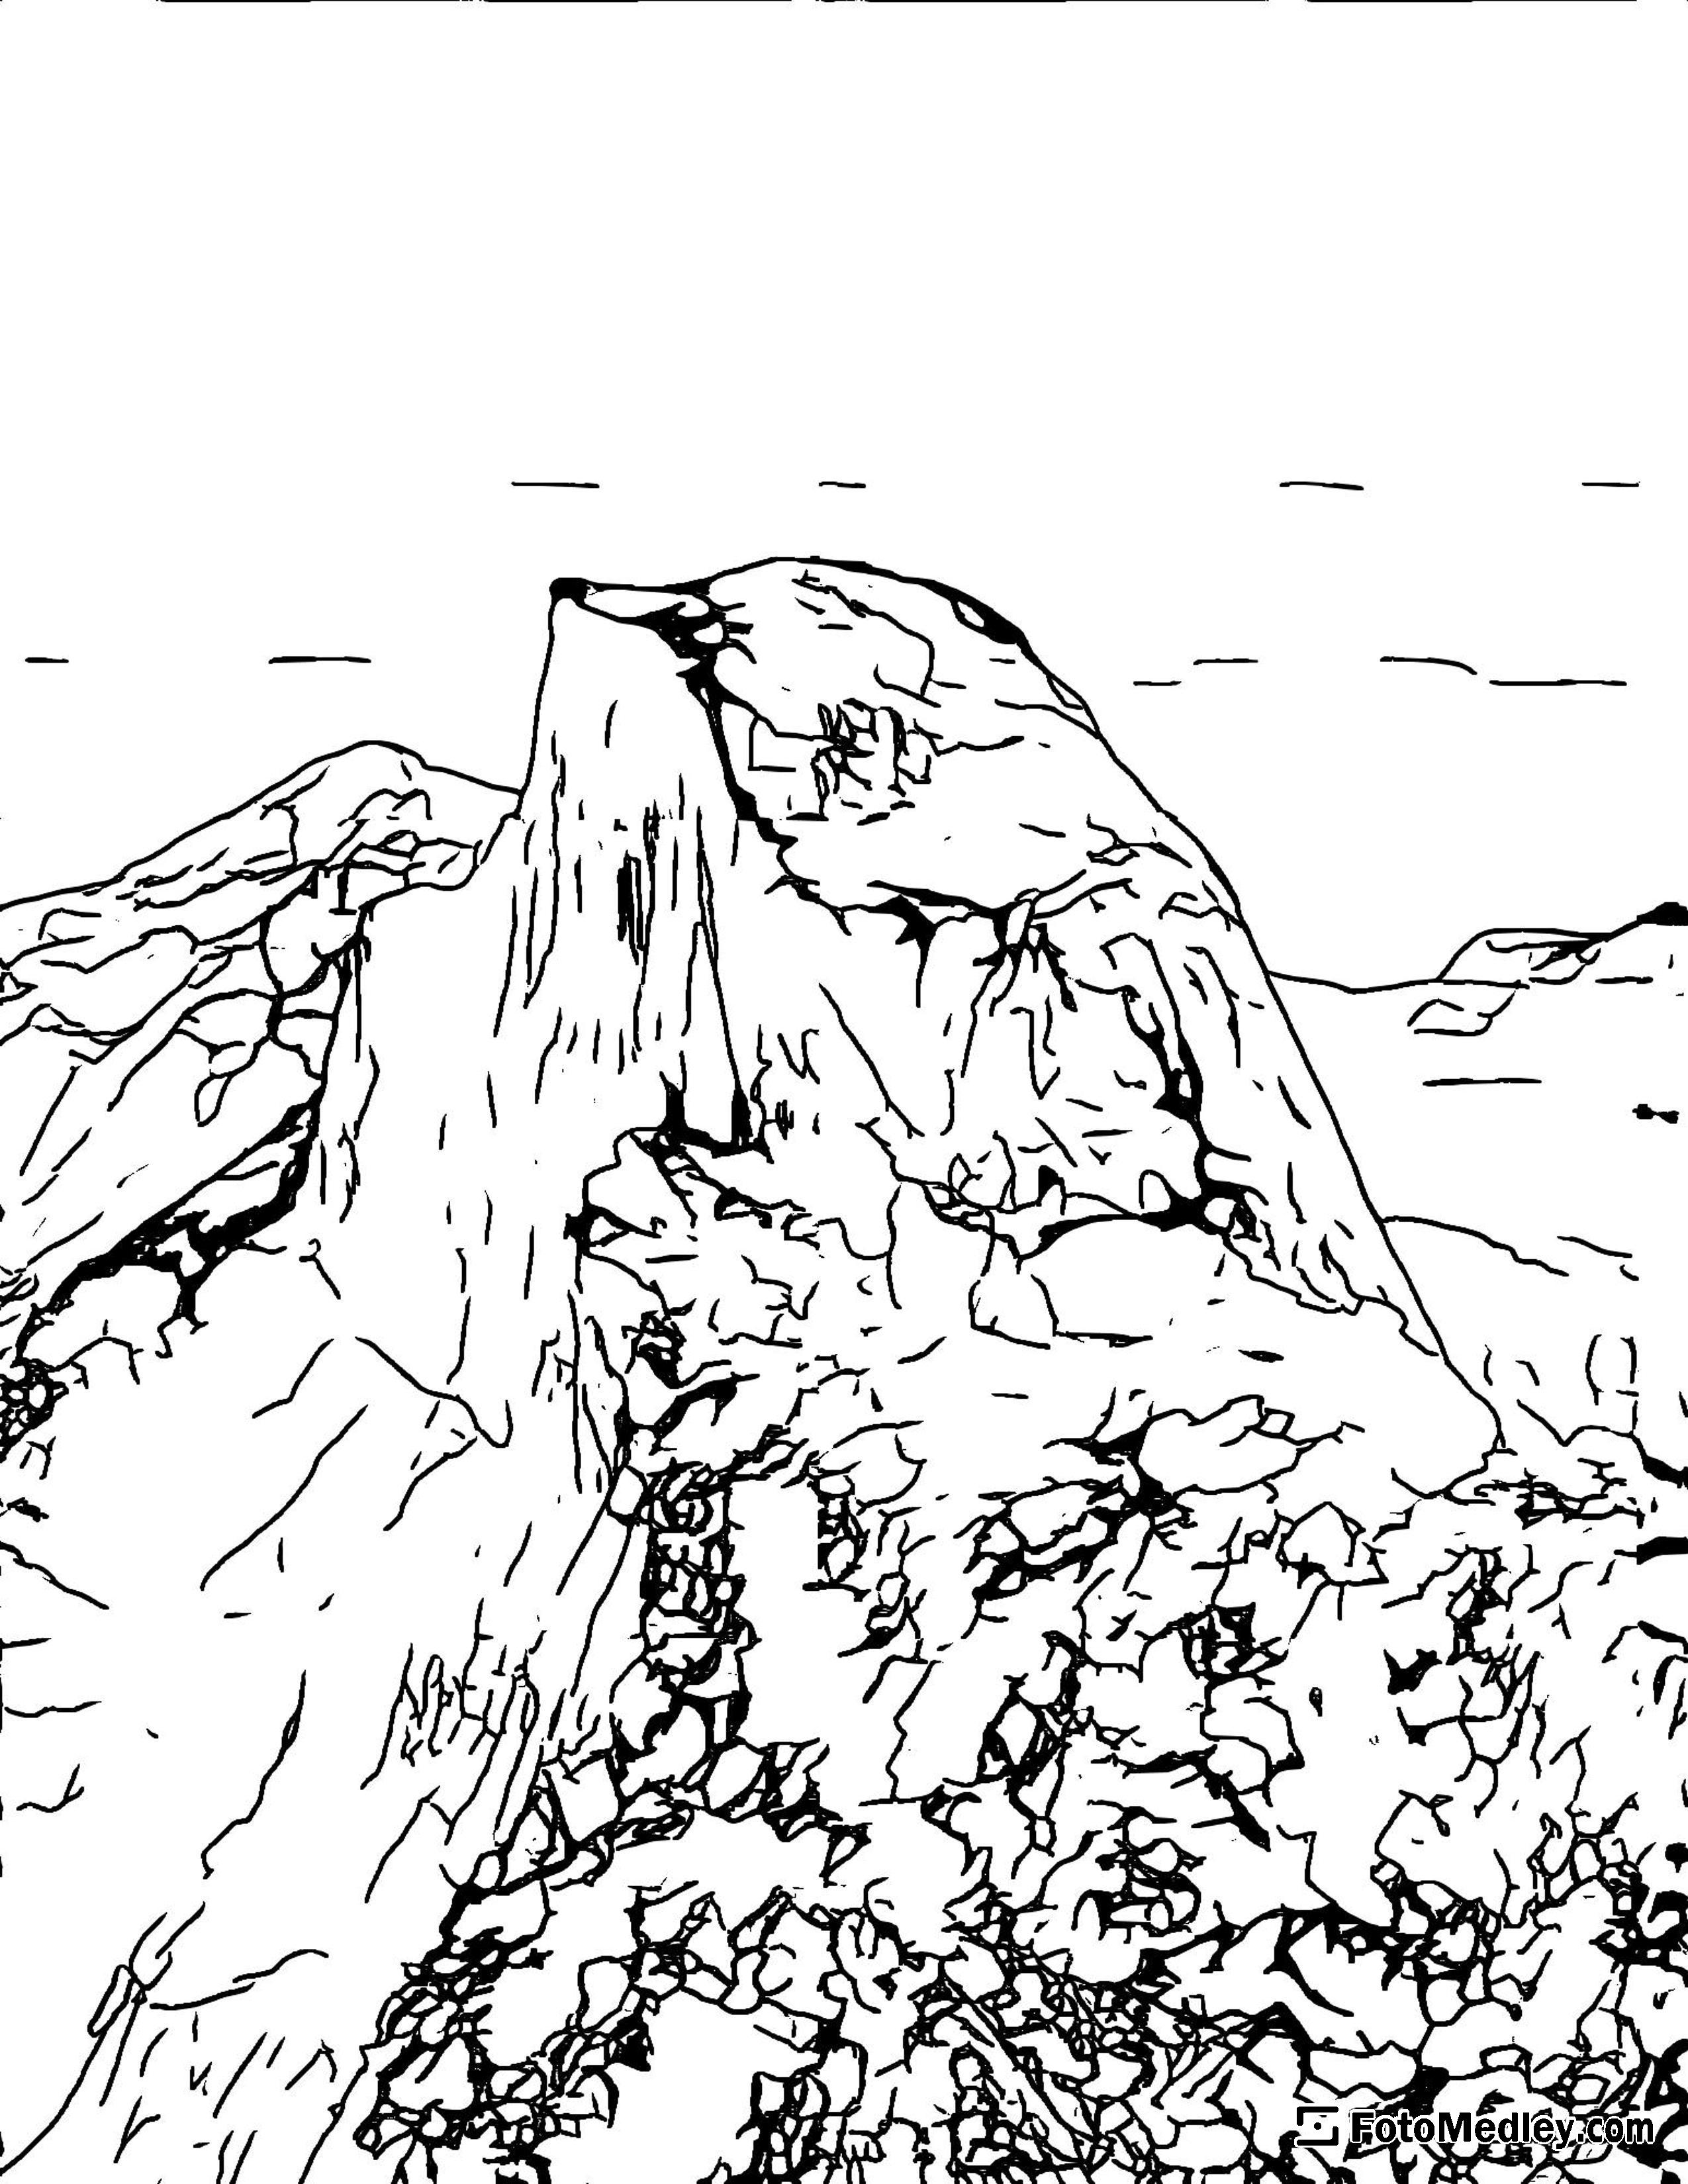 A coloring page of the iconic Half Dome of Yosemite Valley.